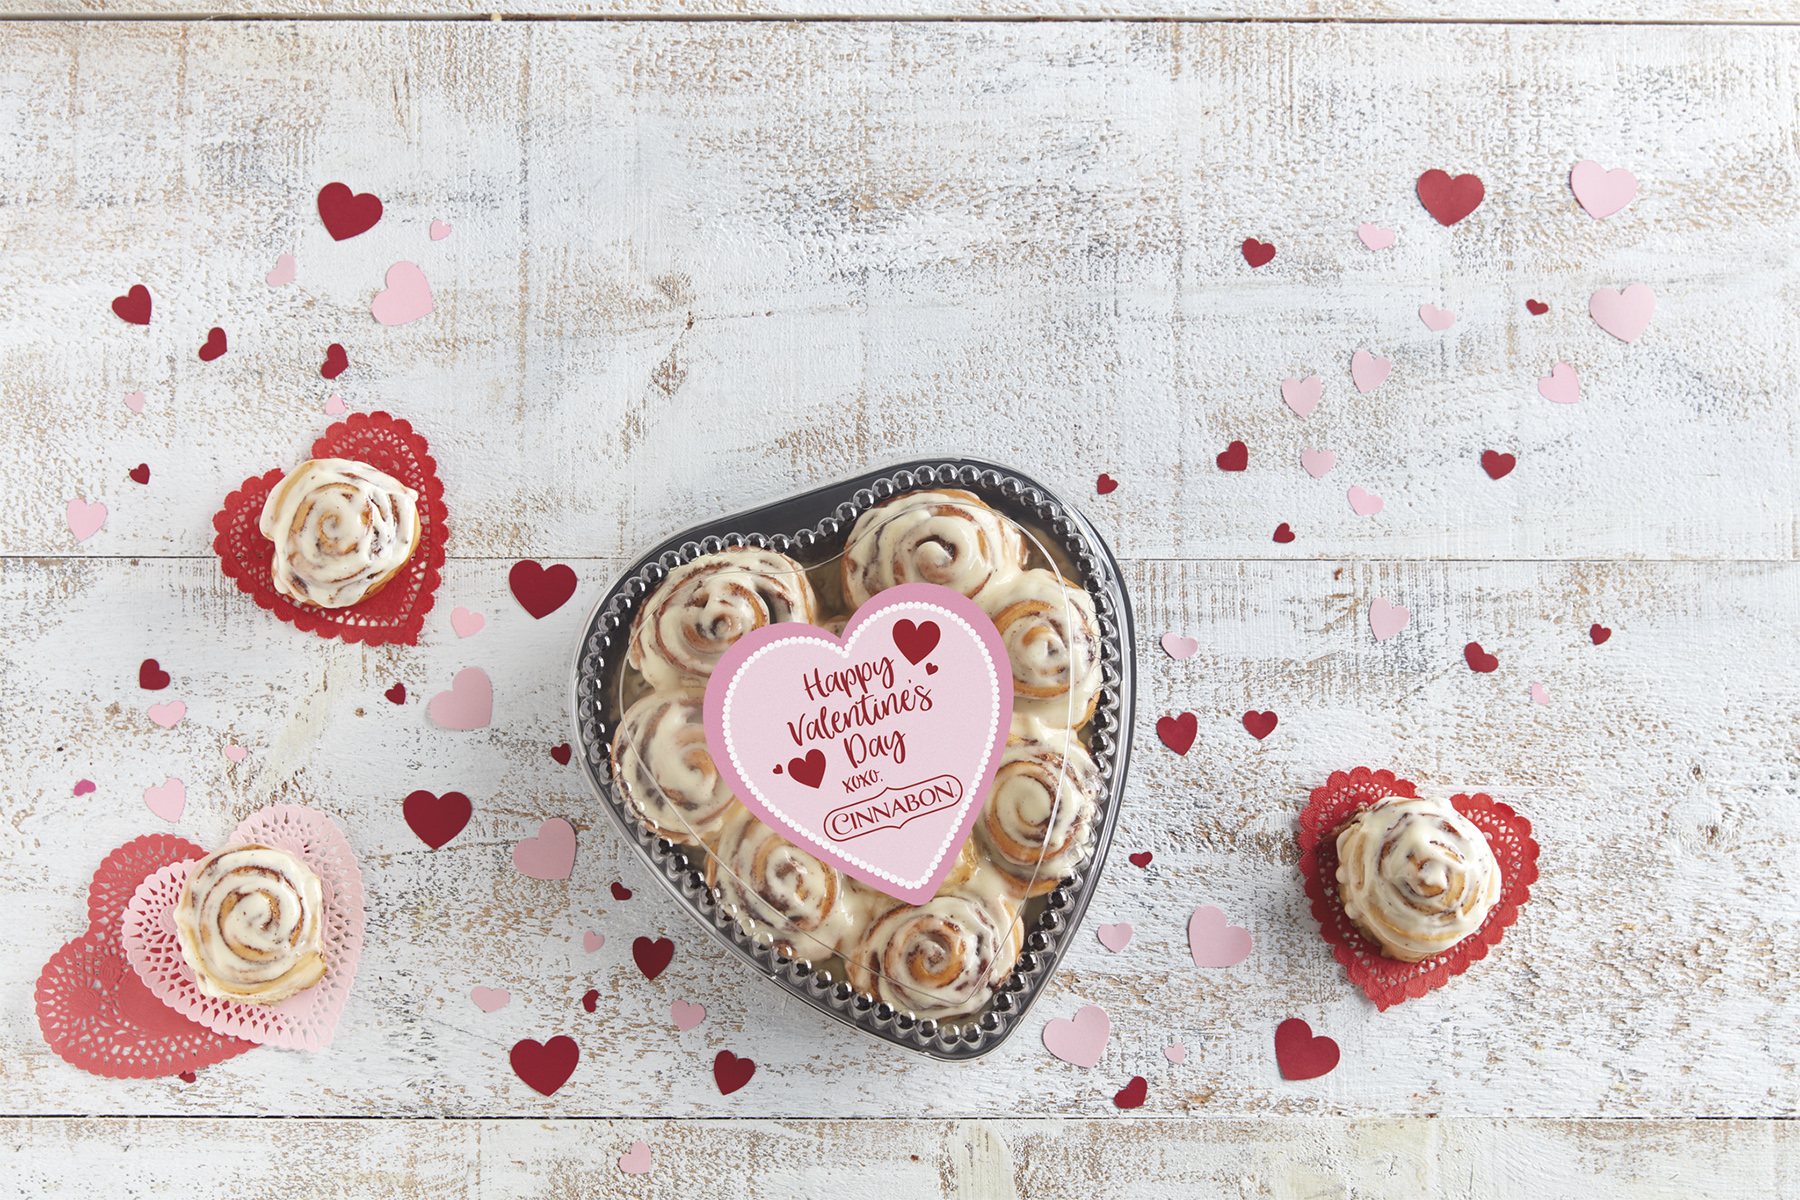 cinnabon-deliver-heart-shaped-boxes-valentines-day